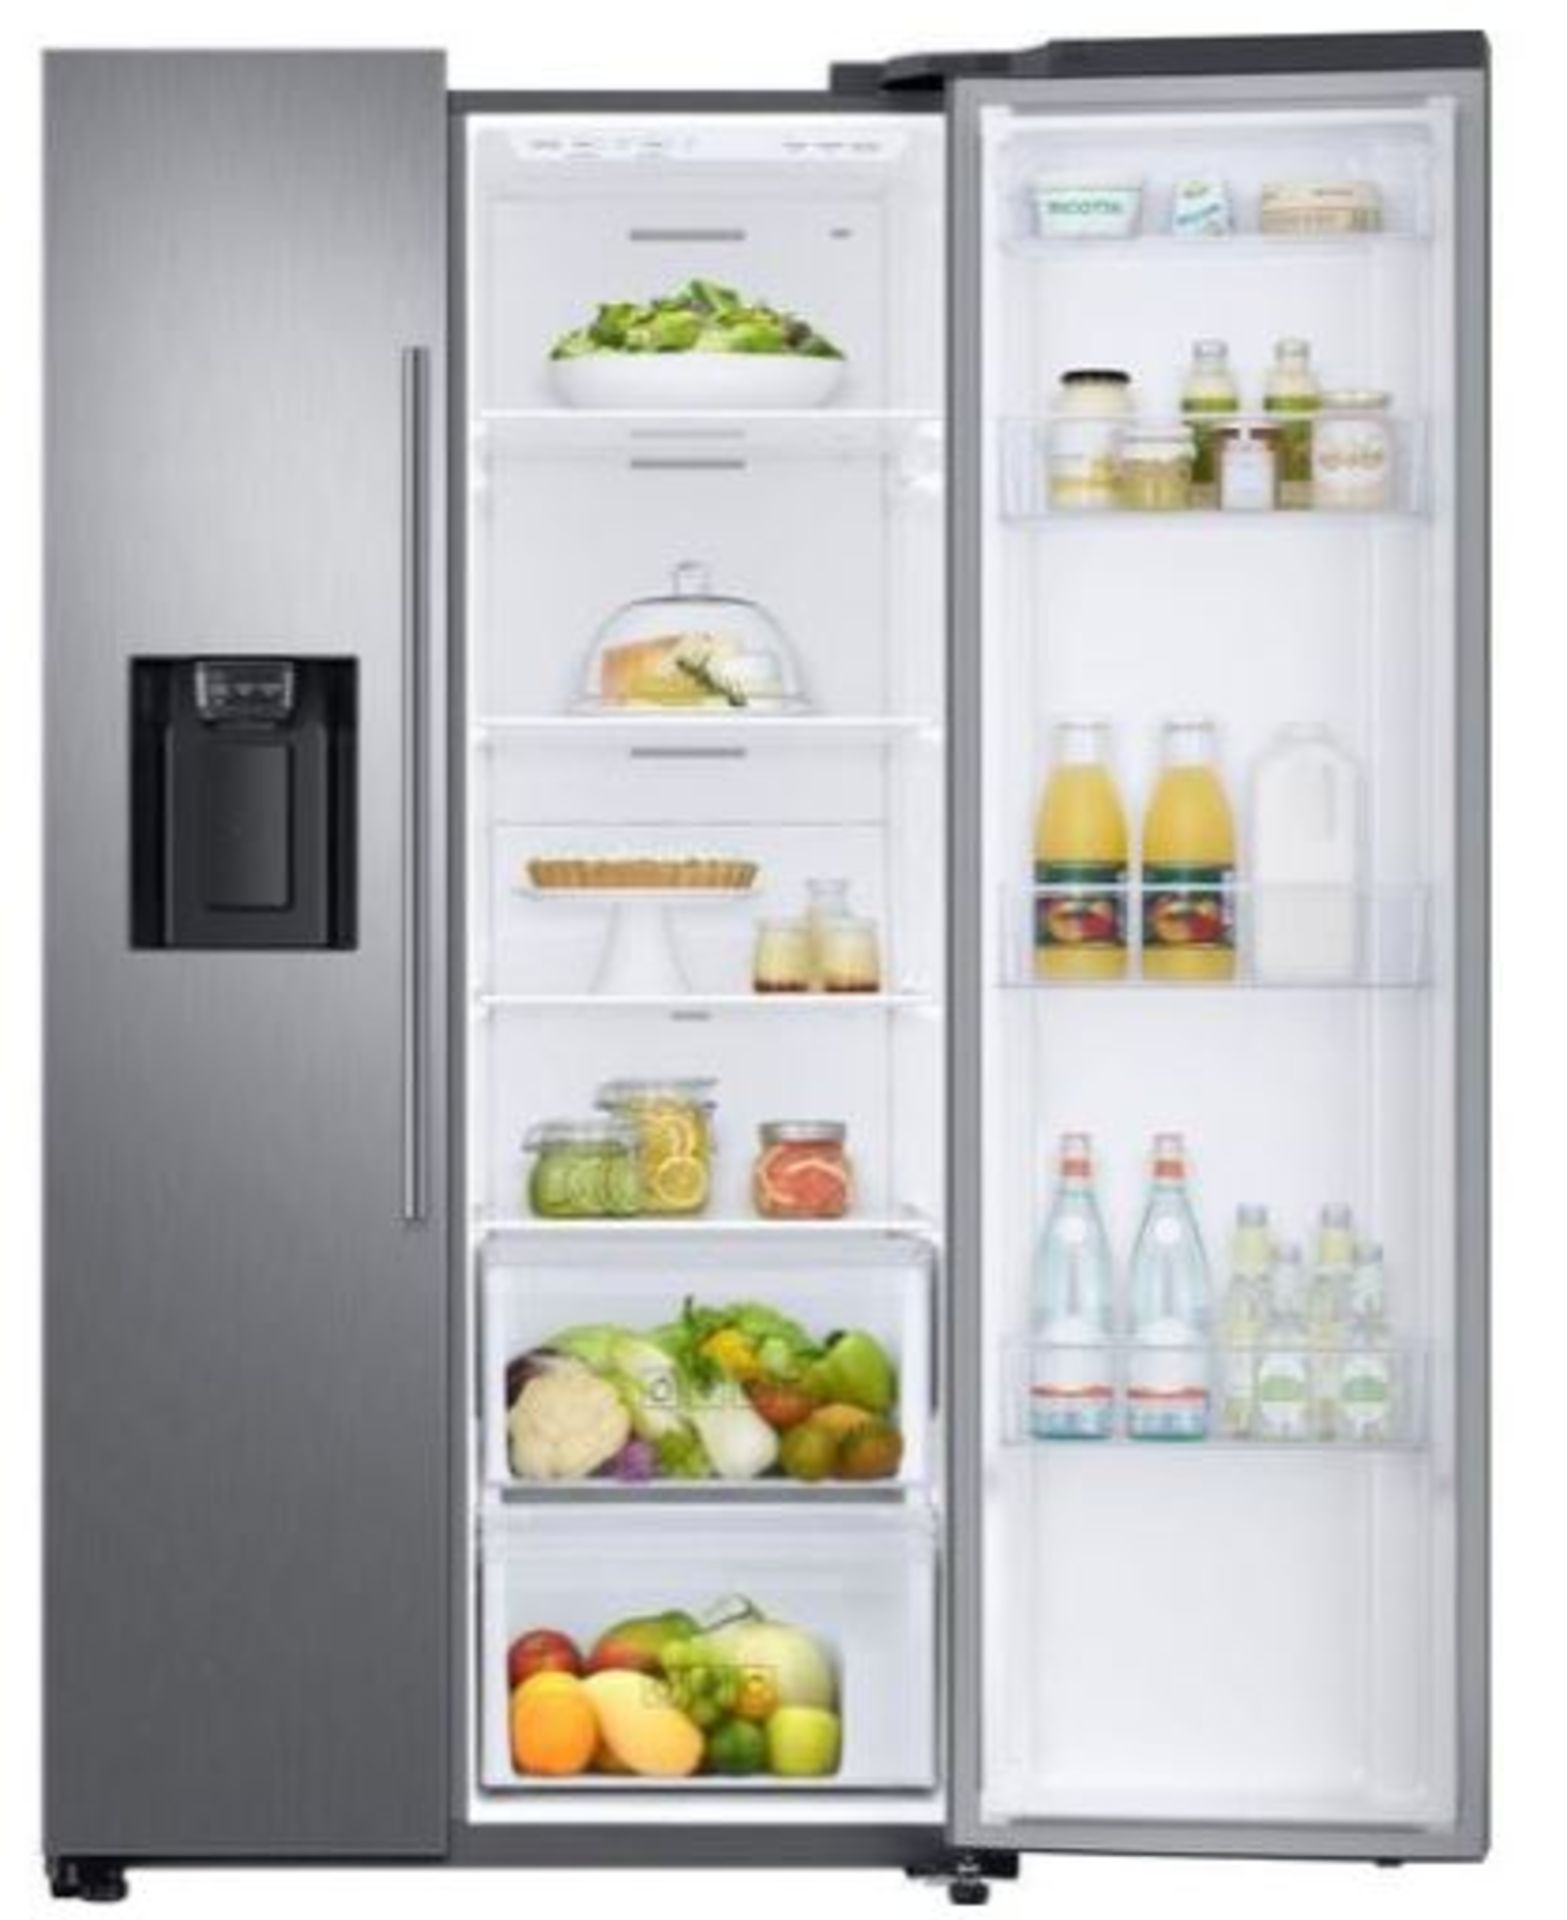 Pallet of 1 Samsung Water & Ice Fridge freezer. Latest selling price £1,299.99* - Image 4 of 7